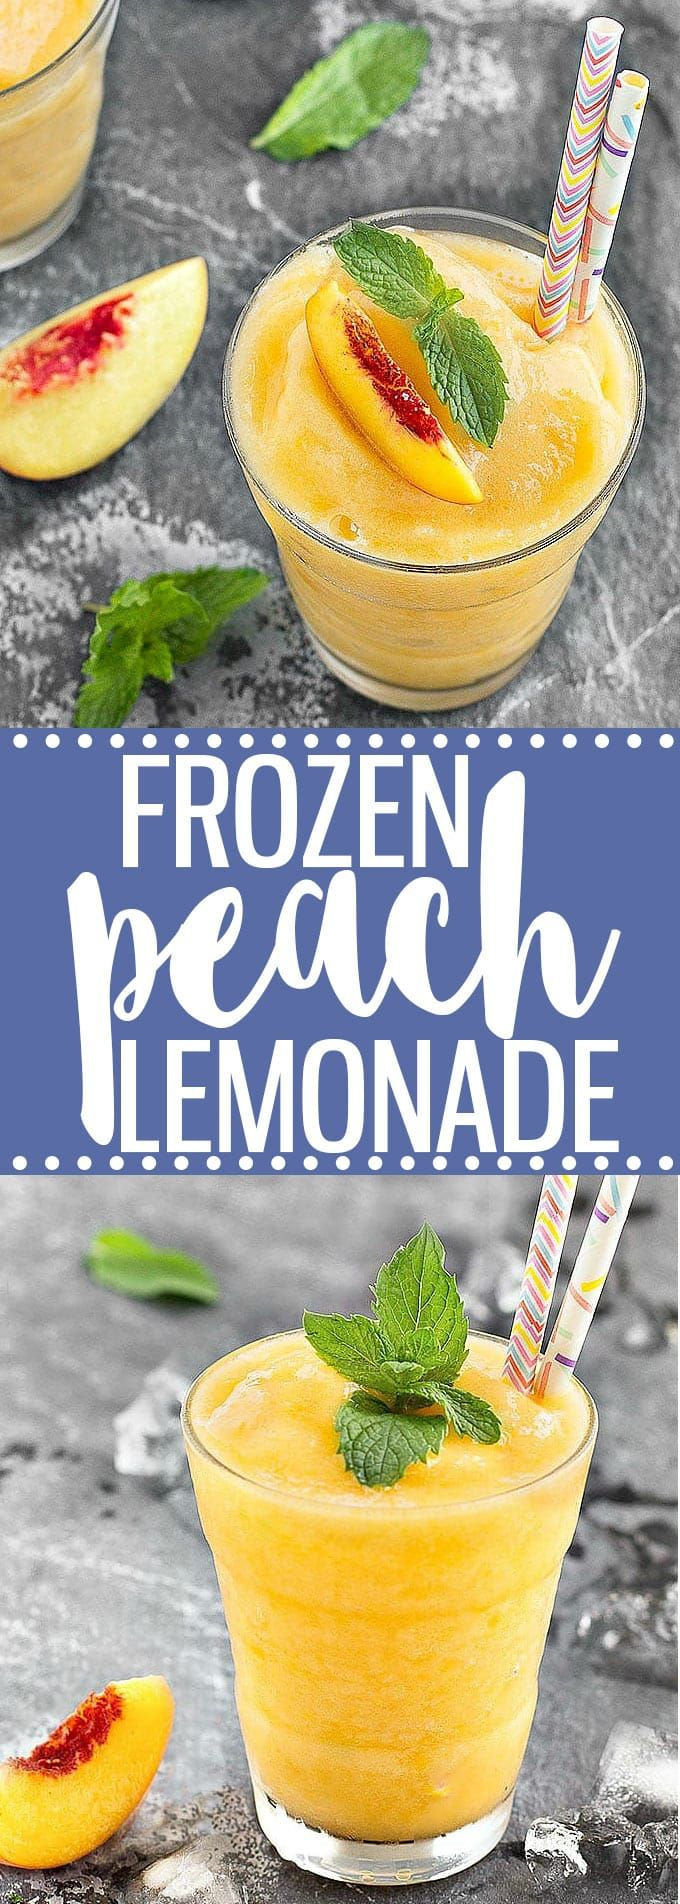 Frozen peach lemonade - the perfect refreshing beverage to cool you down this summer! This easy recipe requires just 4 ingredients, a blender and 5 minutes! Add some vodka for a delicious adult version!  via @easyasapplepie